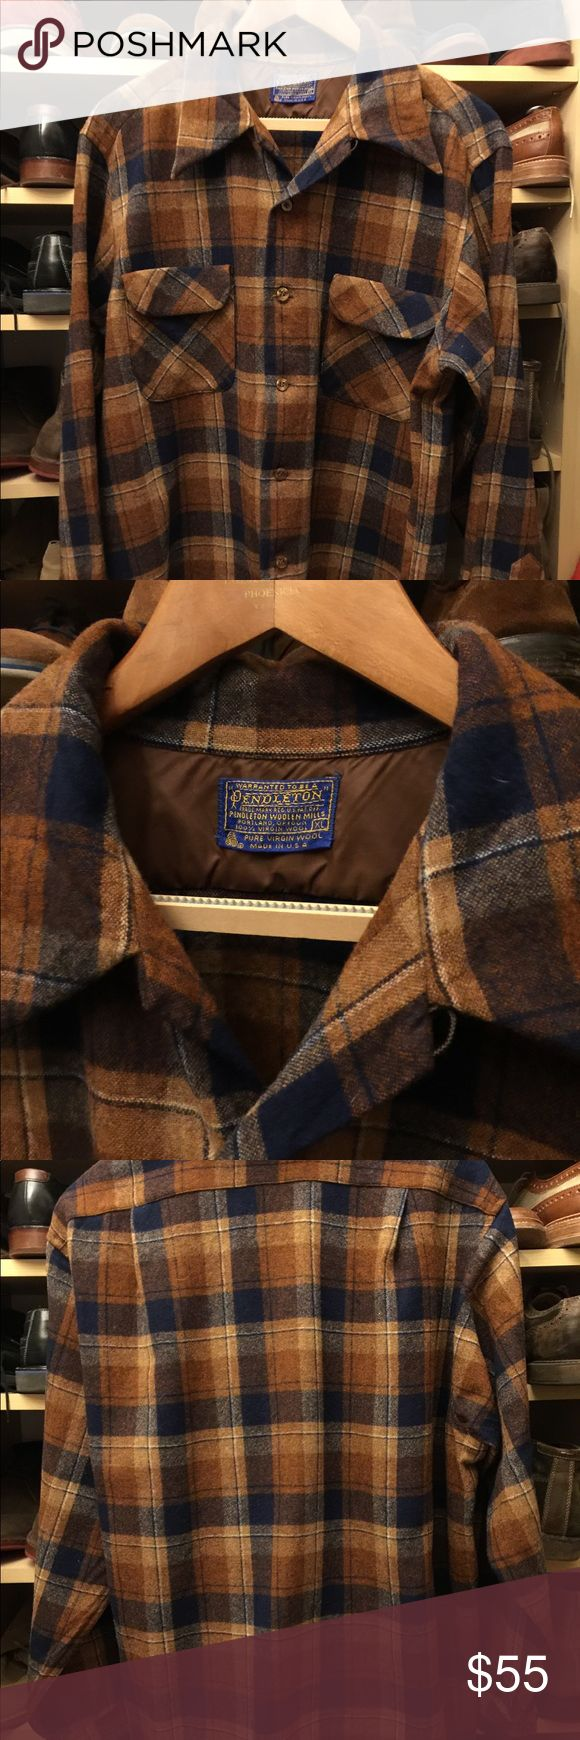 Vintage Pendleton shirt Original Pendleton 100% virgin wool plaid shirt in brand new condition. It was never worn. It has 2 front pockets. It is a gorgeous caramel and navy blue plaid that goes well with jeans or caqui. Pendleton Shirts Casual Button Down Shirts